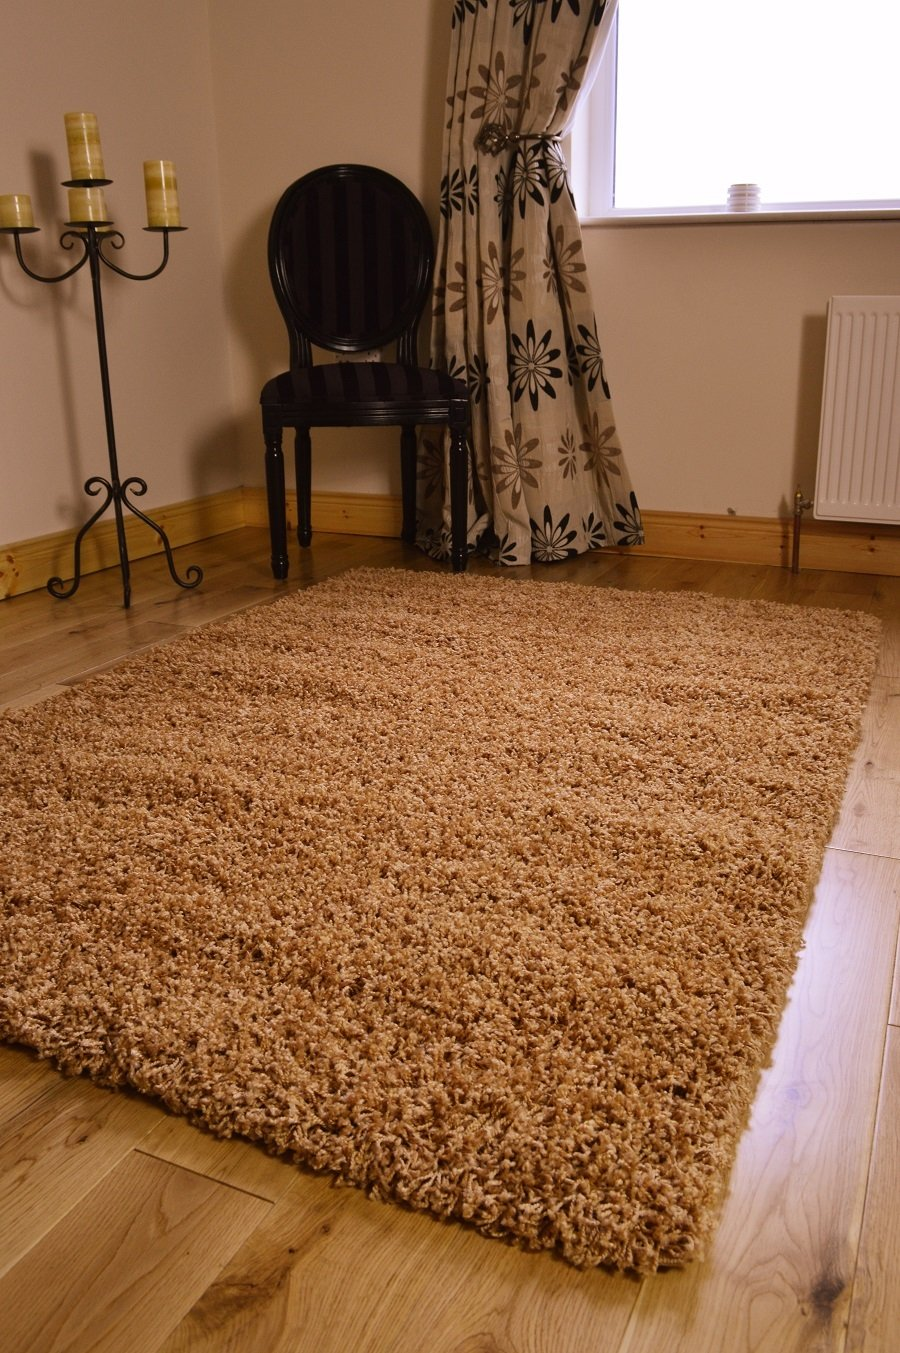 *5 SIZES*NEW SMALL MEDIUM XX LARGE MODERN GOLD BISCUIT SOFT THICK SHAGGY BEDROOM RUG CARPET LIVING ROOM MAT CHEAP (200 X 290 CMS)       Customer review and more information